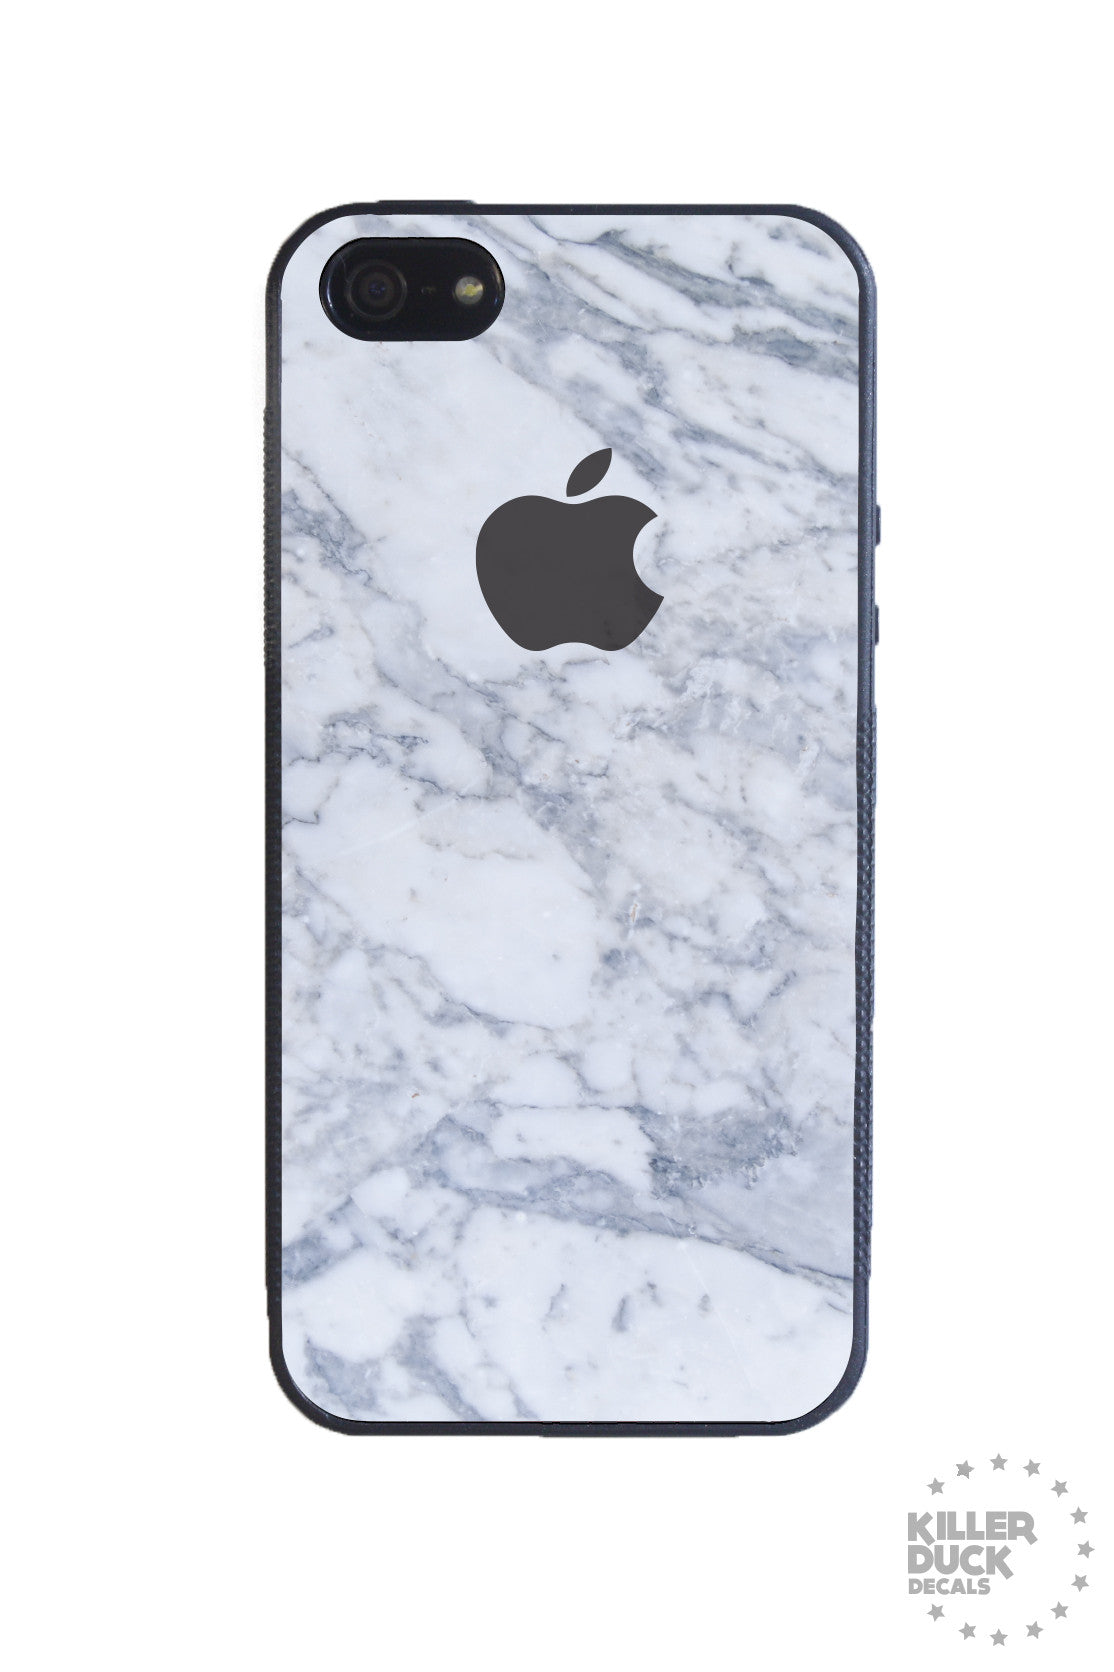 White marble iphone case killer duck decals